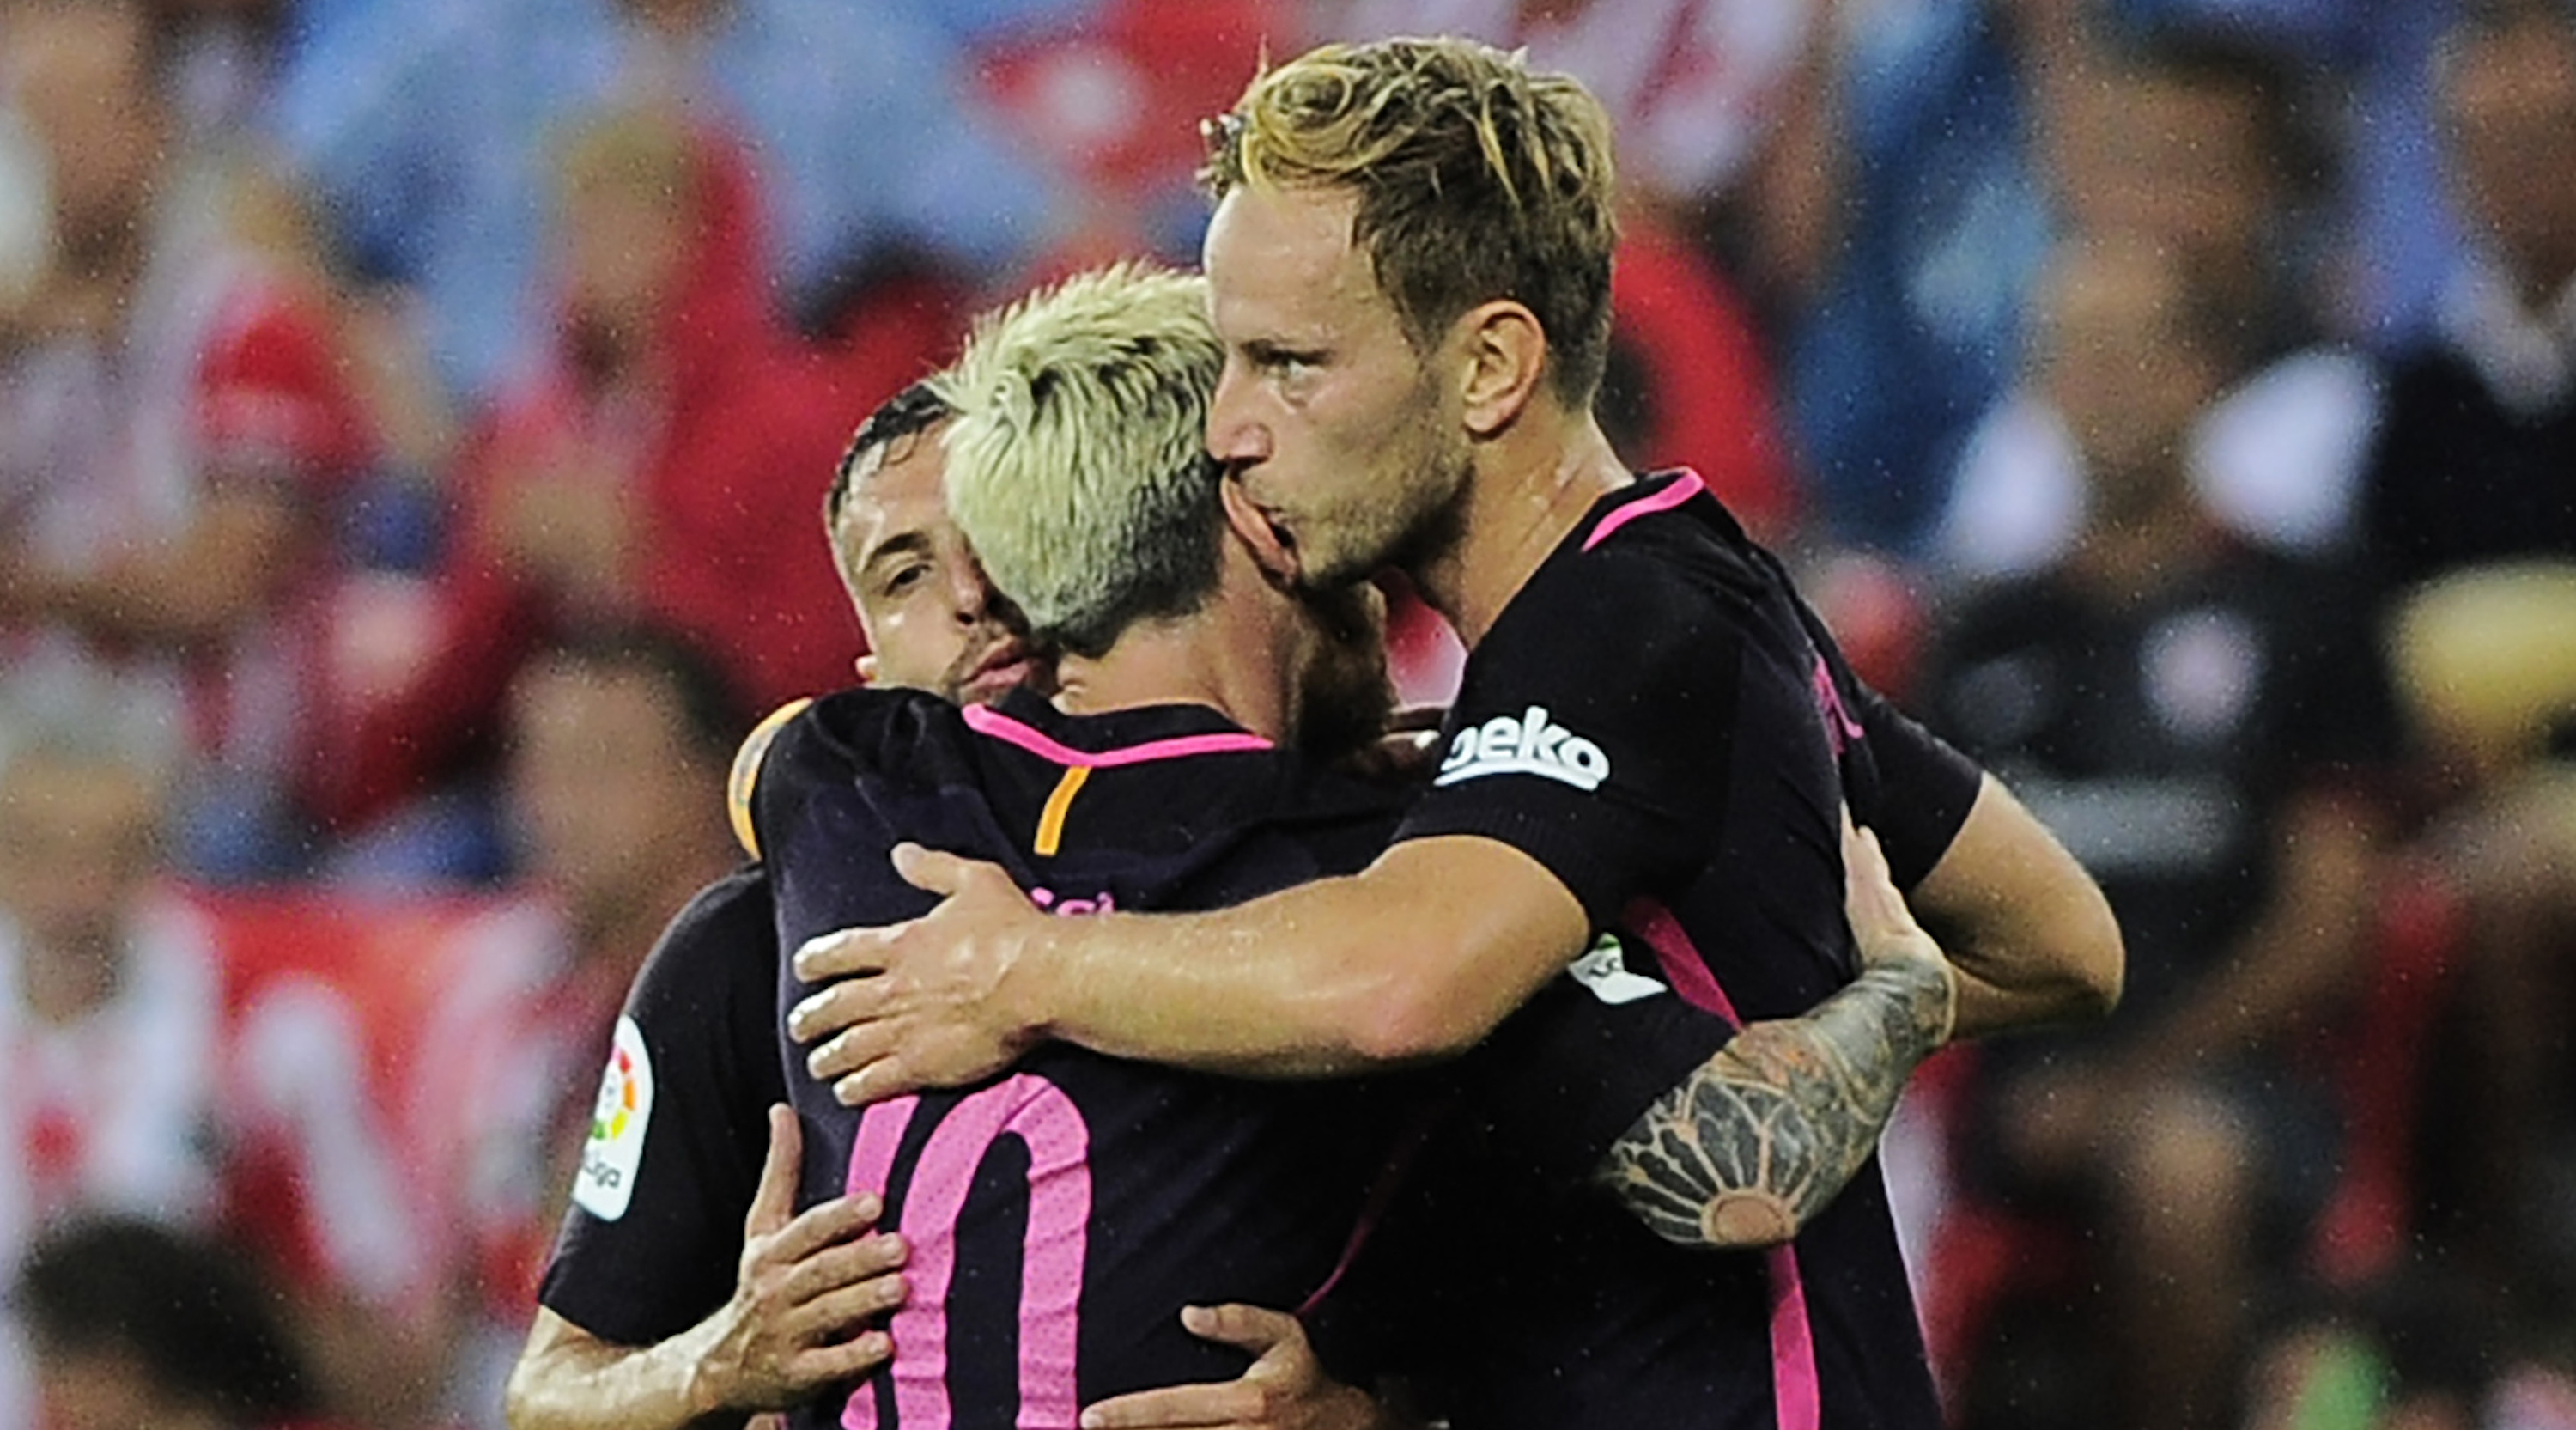 Barcelona's Croatian midfielder Ivan Rakitic (R) is congratulated by teammates defender Jordi Alba (L) and Argentinian forward Lionel Messi after scoring during the Spanish league football match Athletic Club Bilbao vs FC Barcelona at the San Mames stadium in Bilbao on August 28, 2016. / AFP / ANDER GILLENEA (Photo credit should read ANDER GILLENEA/AFP/Getty Images)